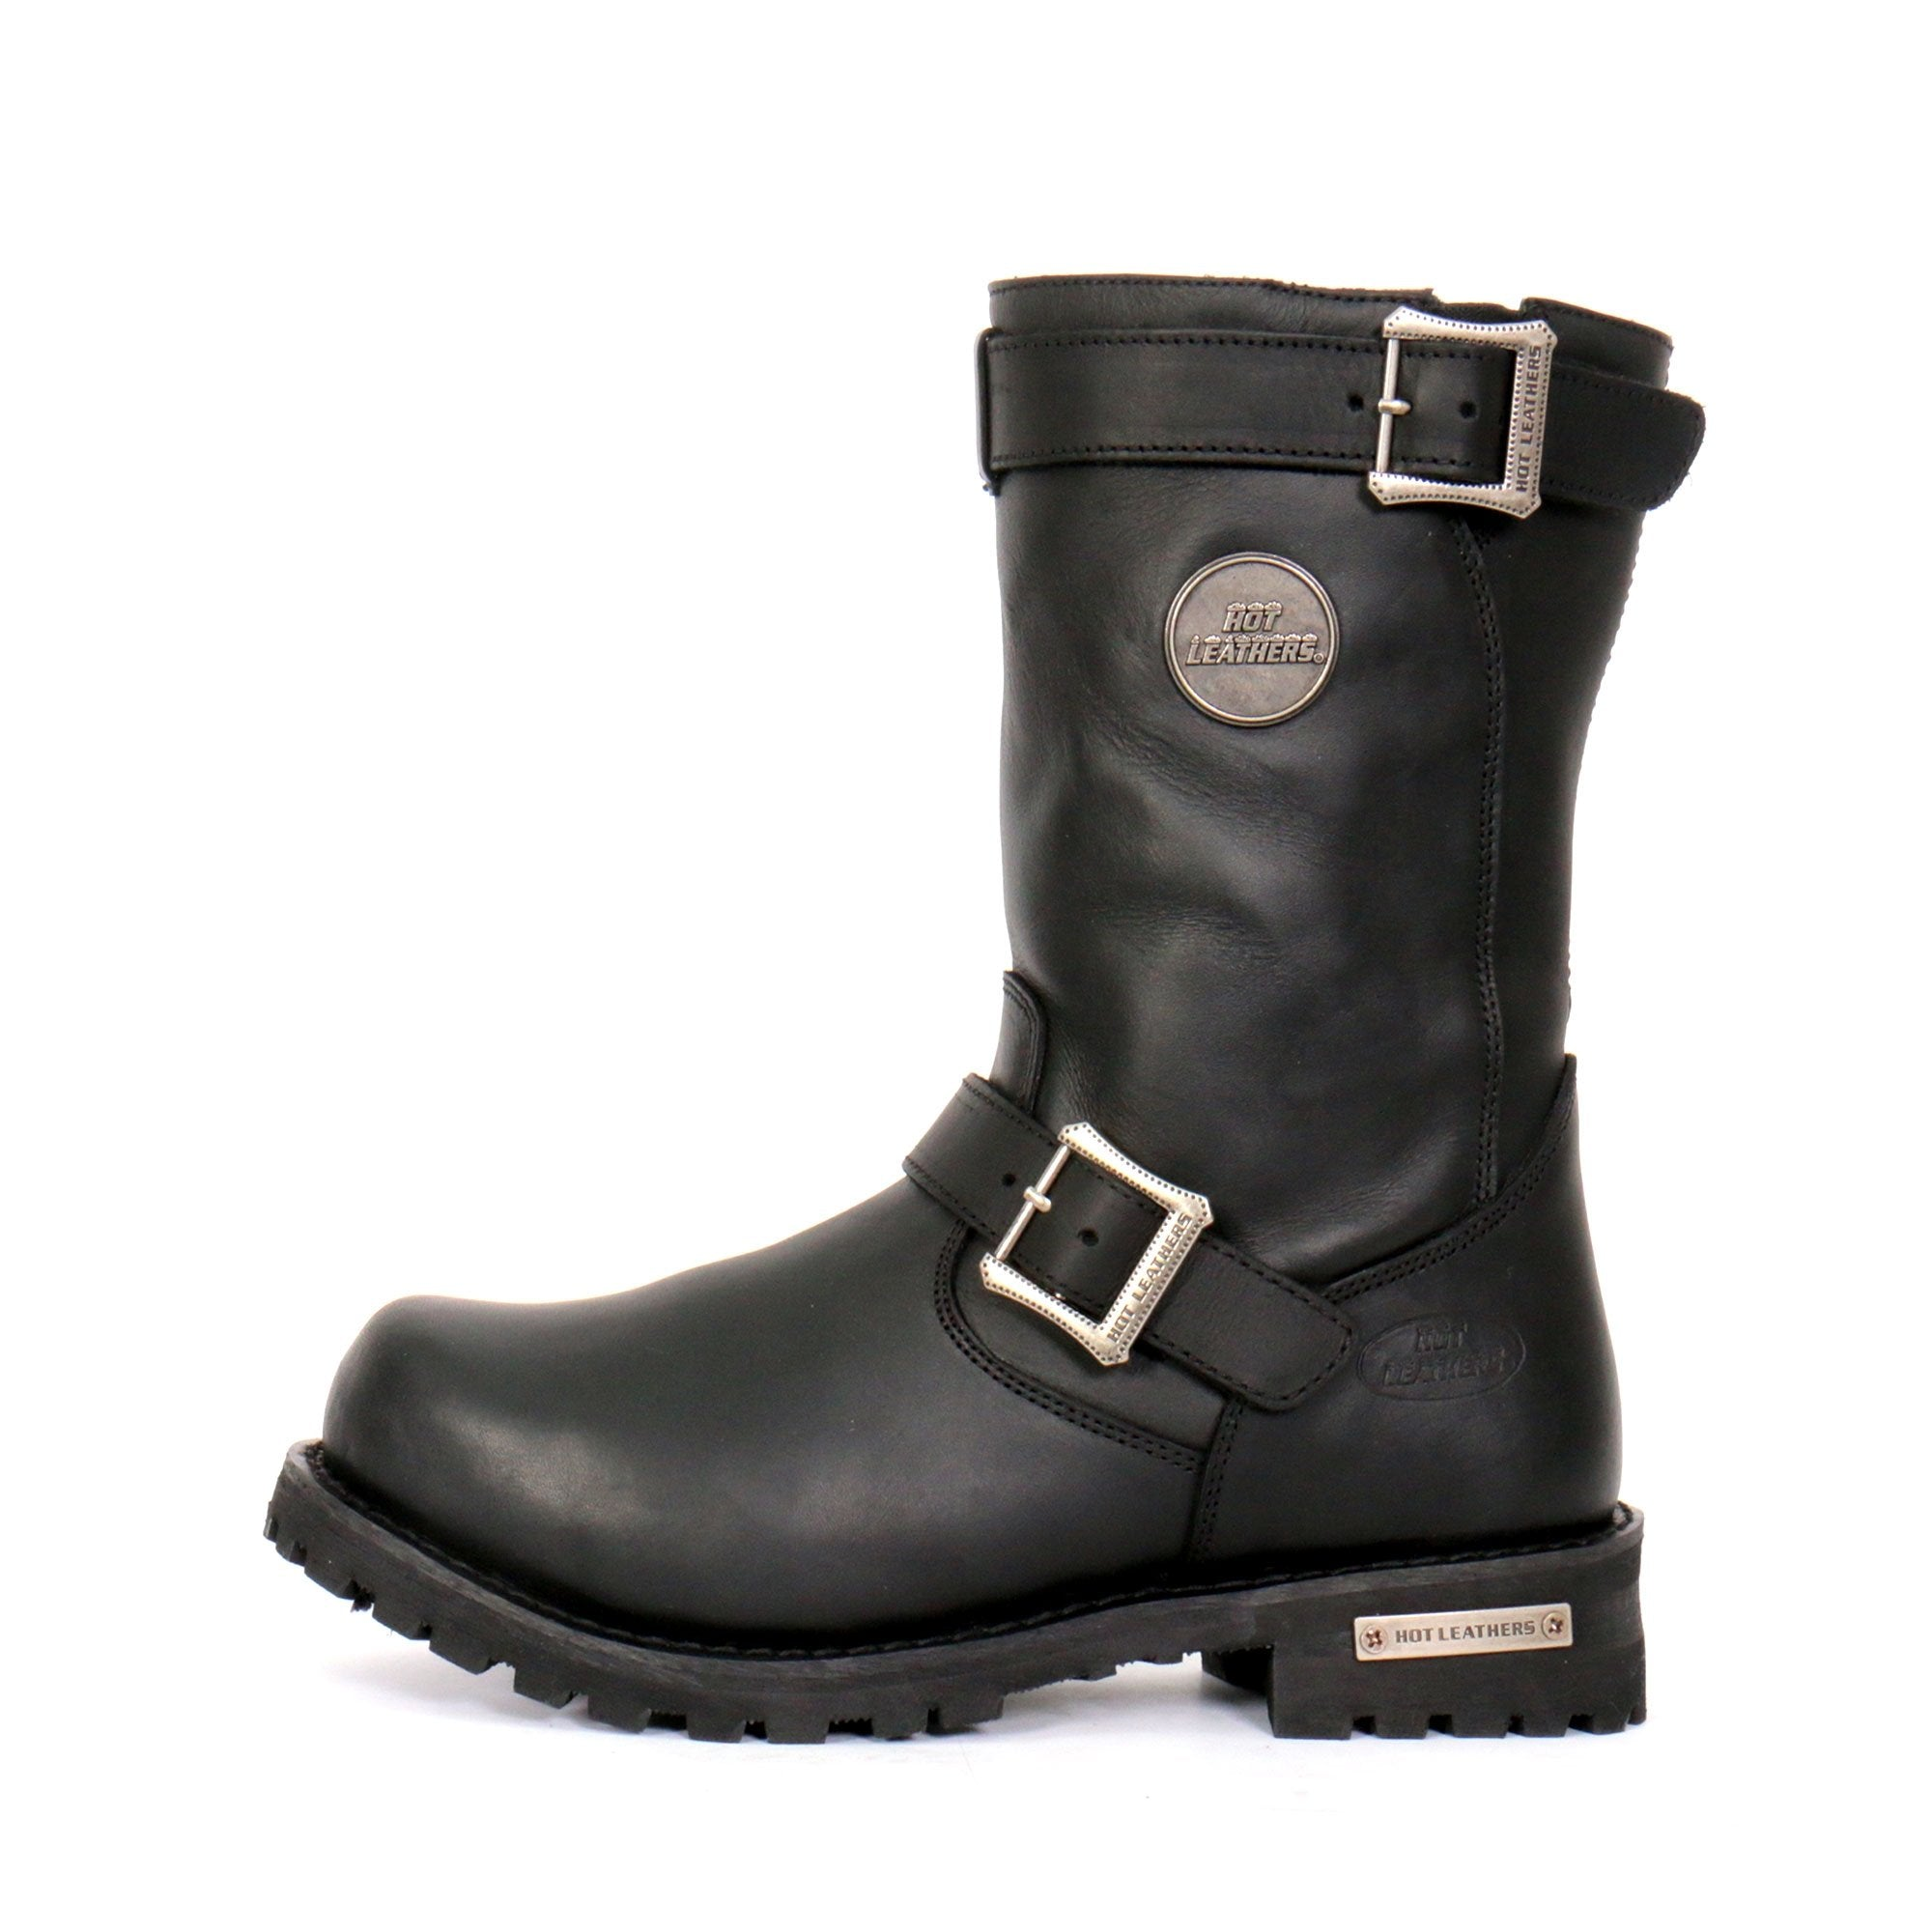 "Hot Leathers Men's 10"" Tall Round Toe Engineer Boots"